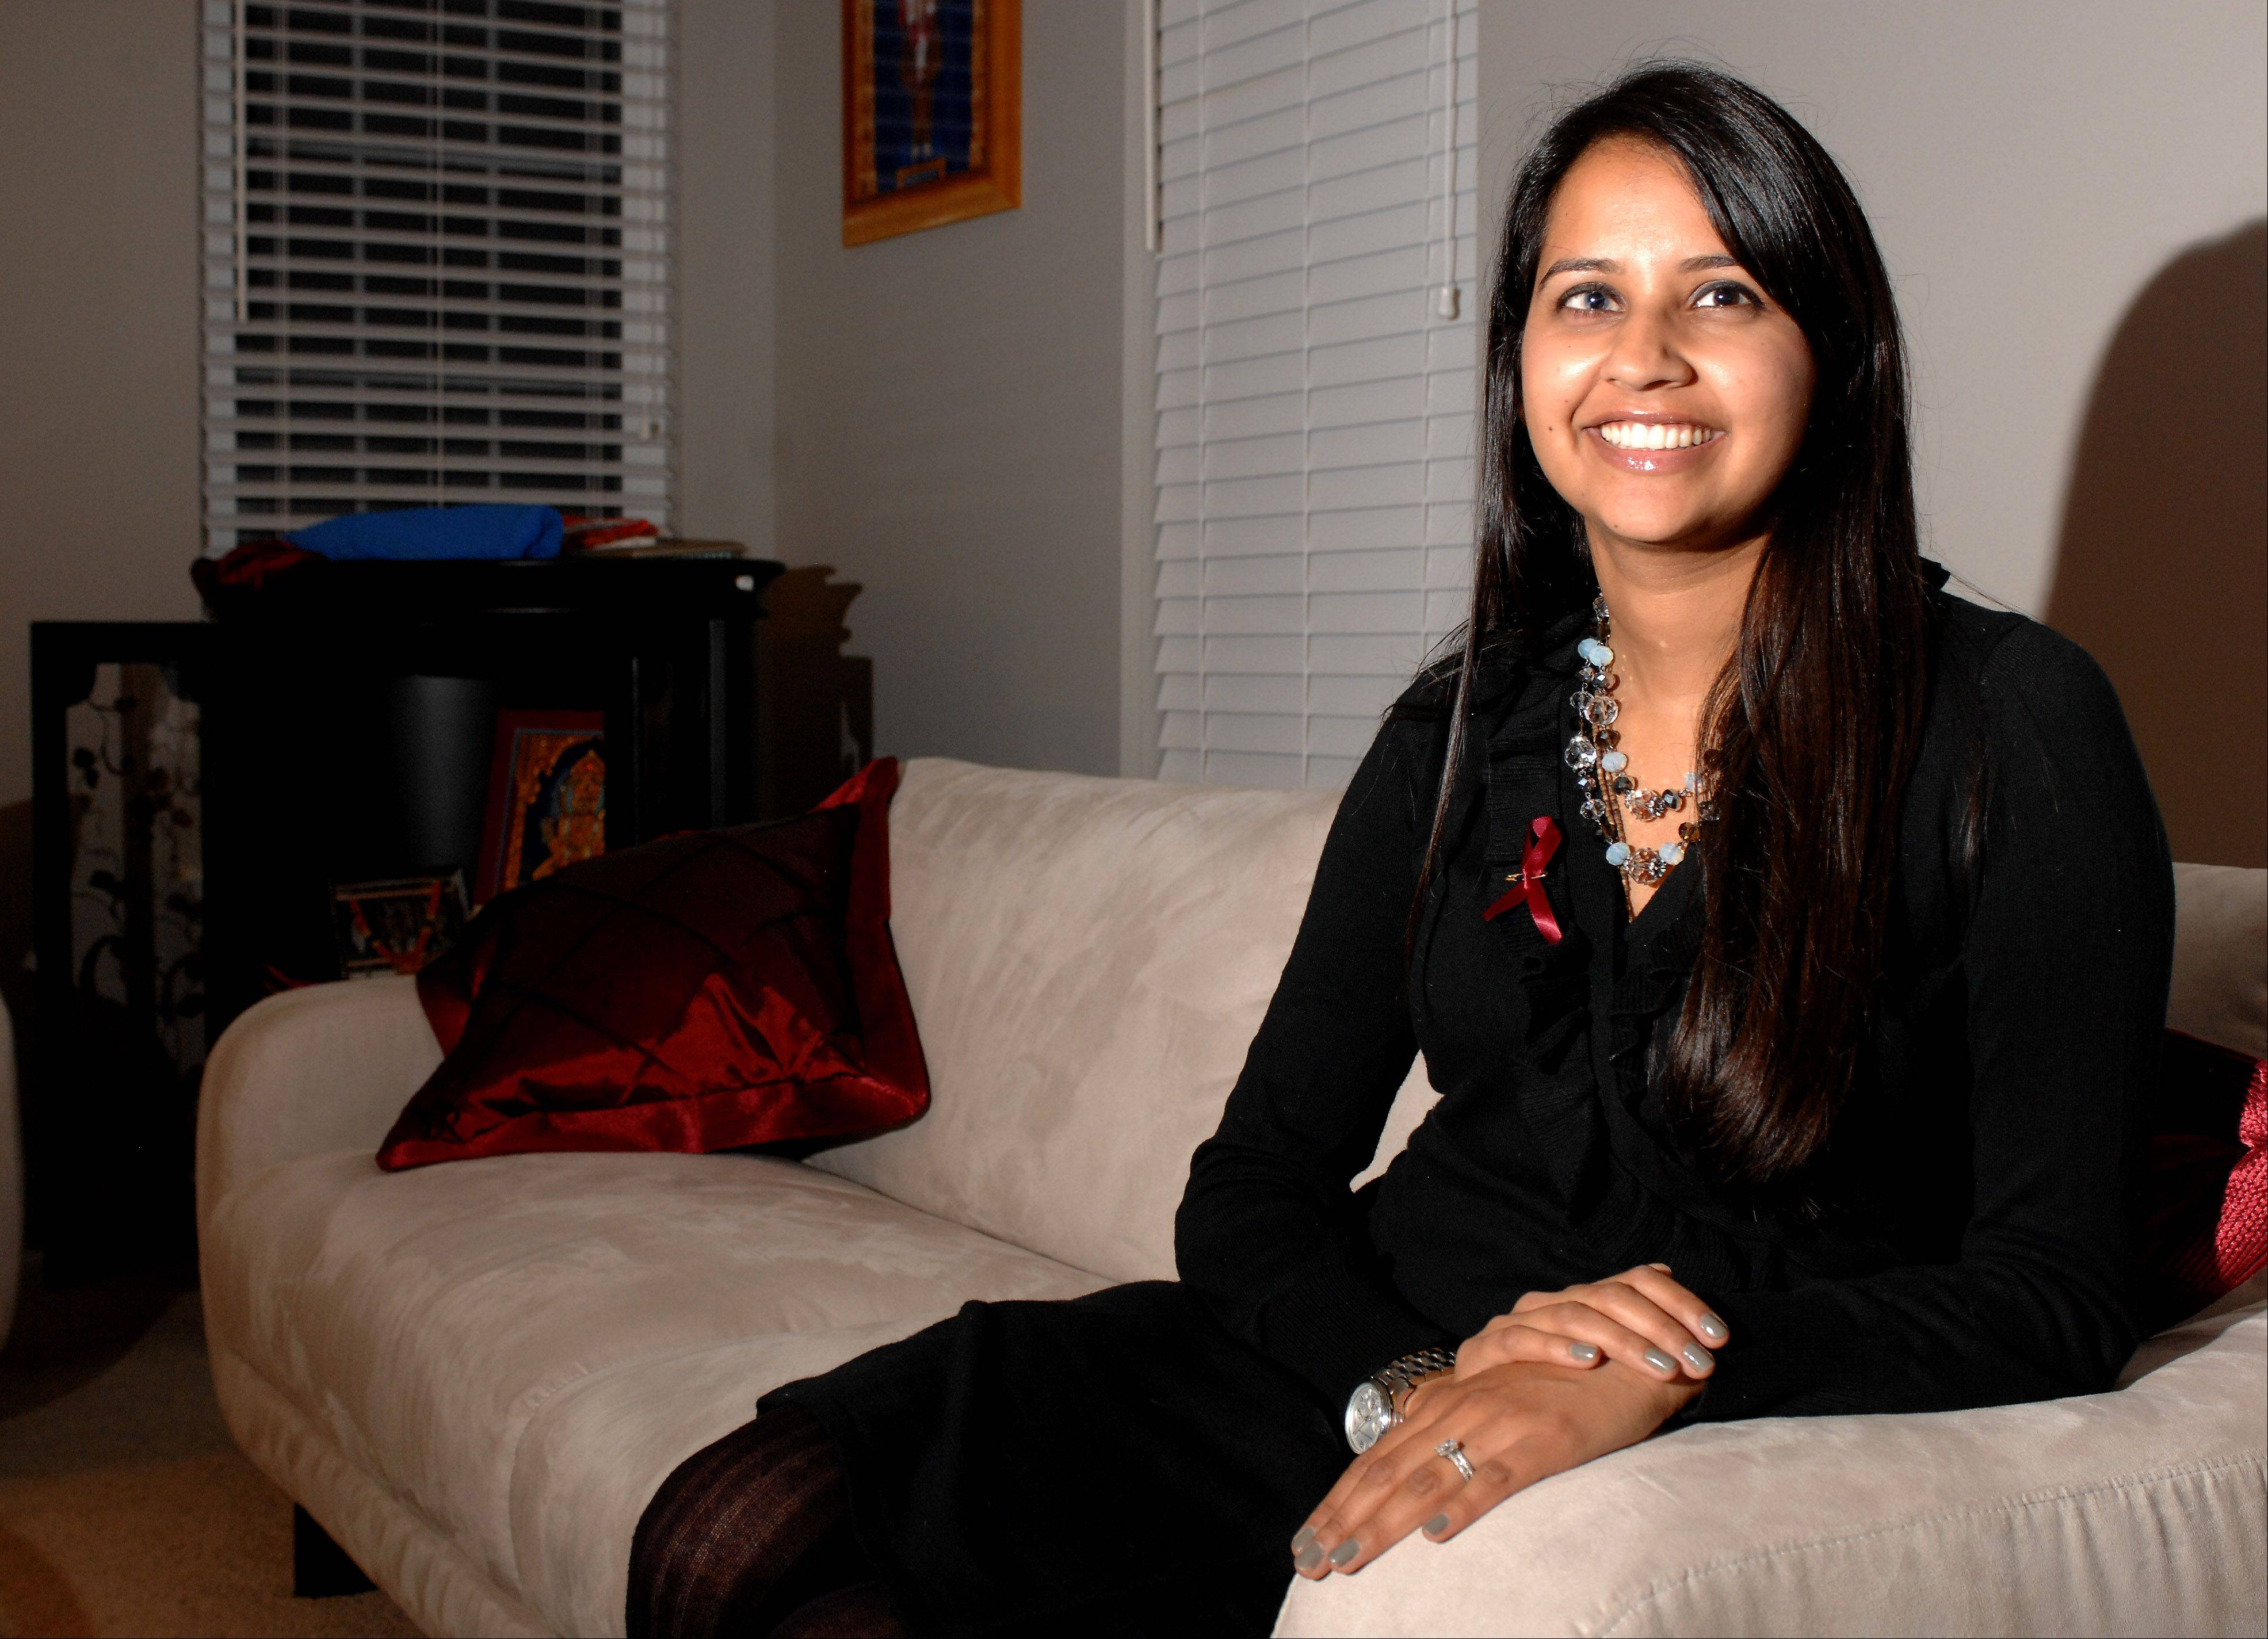 Roopa Desai, 28, of Carol Stream faced two life threatening ailments in 2009 only days before her wedding. Desai was diagnosed with a brain aneurysm and a pulmonary embolism.